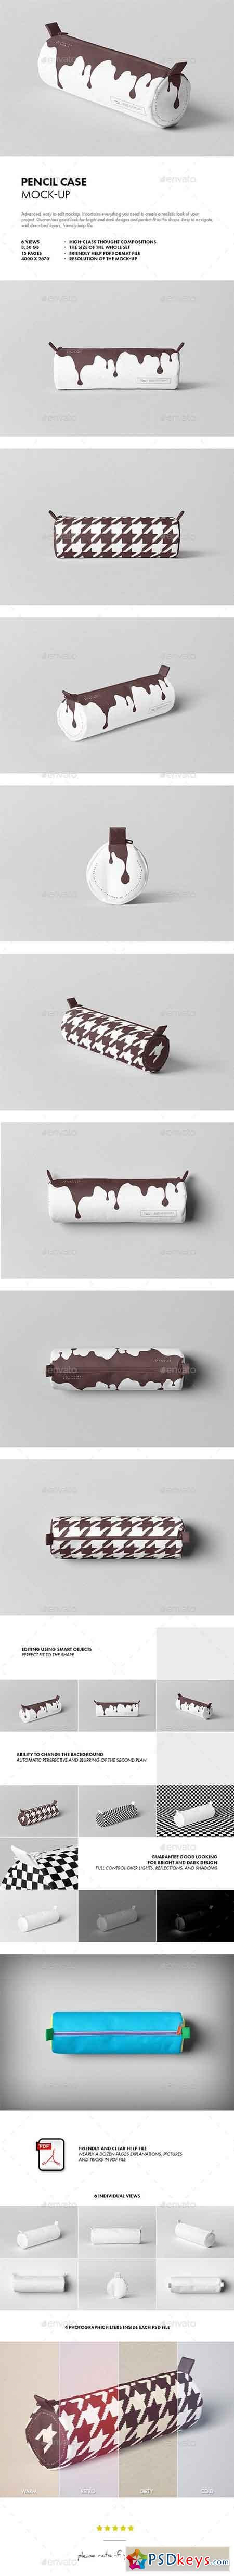 Pencil Case Mock-up 21217029